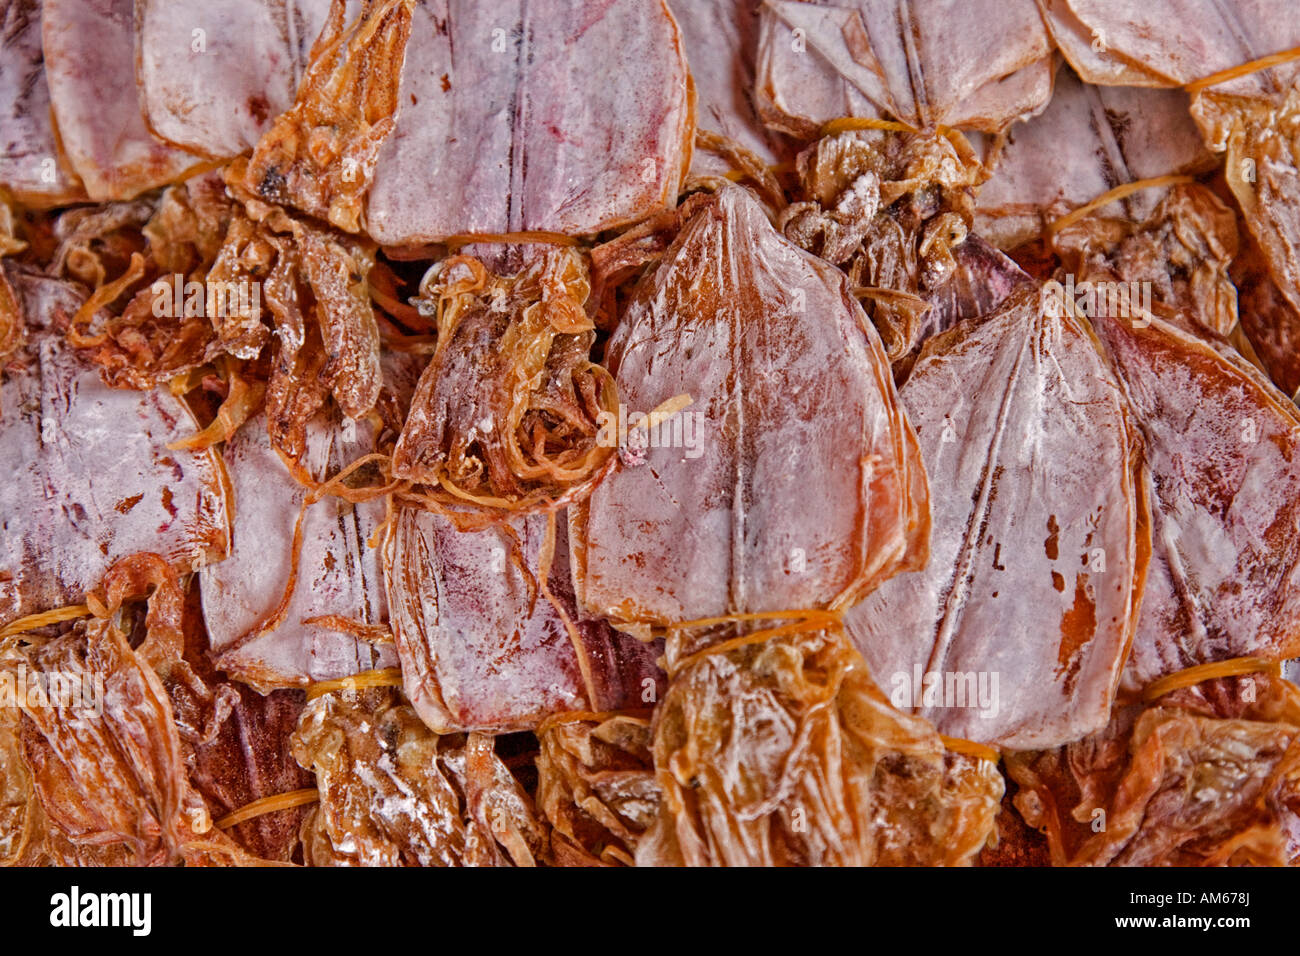 Dried Cuttlefish Stock Photos & Dried Cuttlefish Stock Images - Alamy